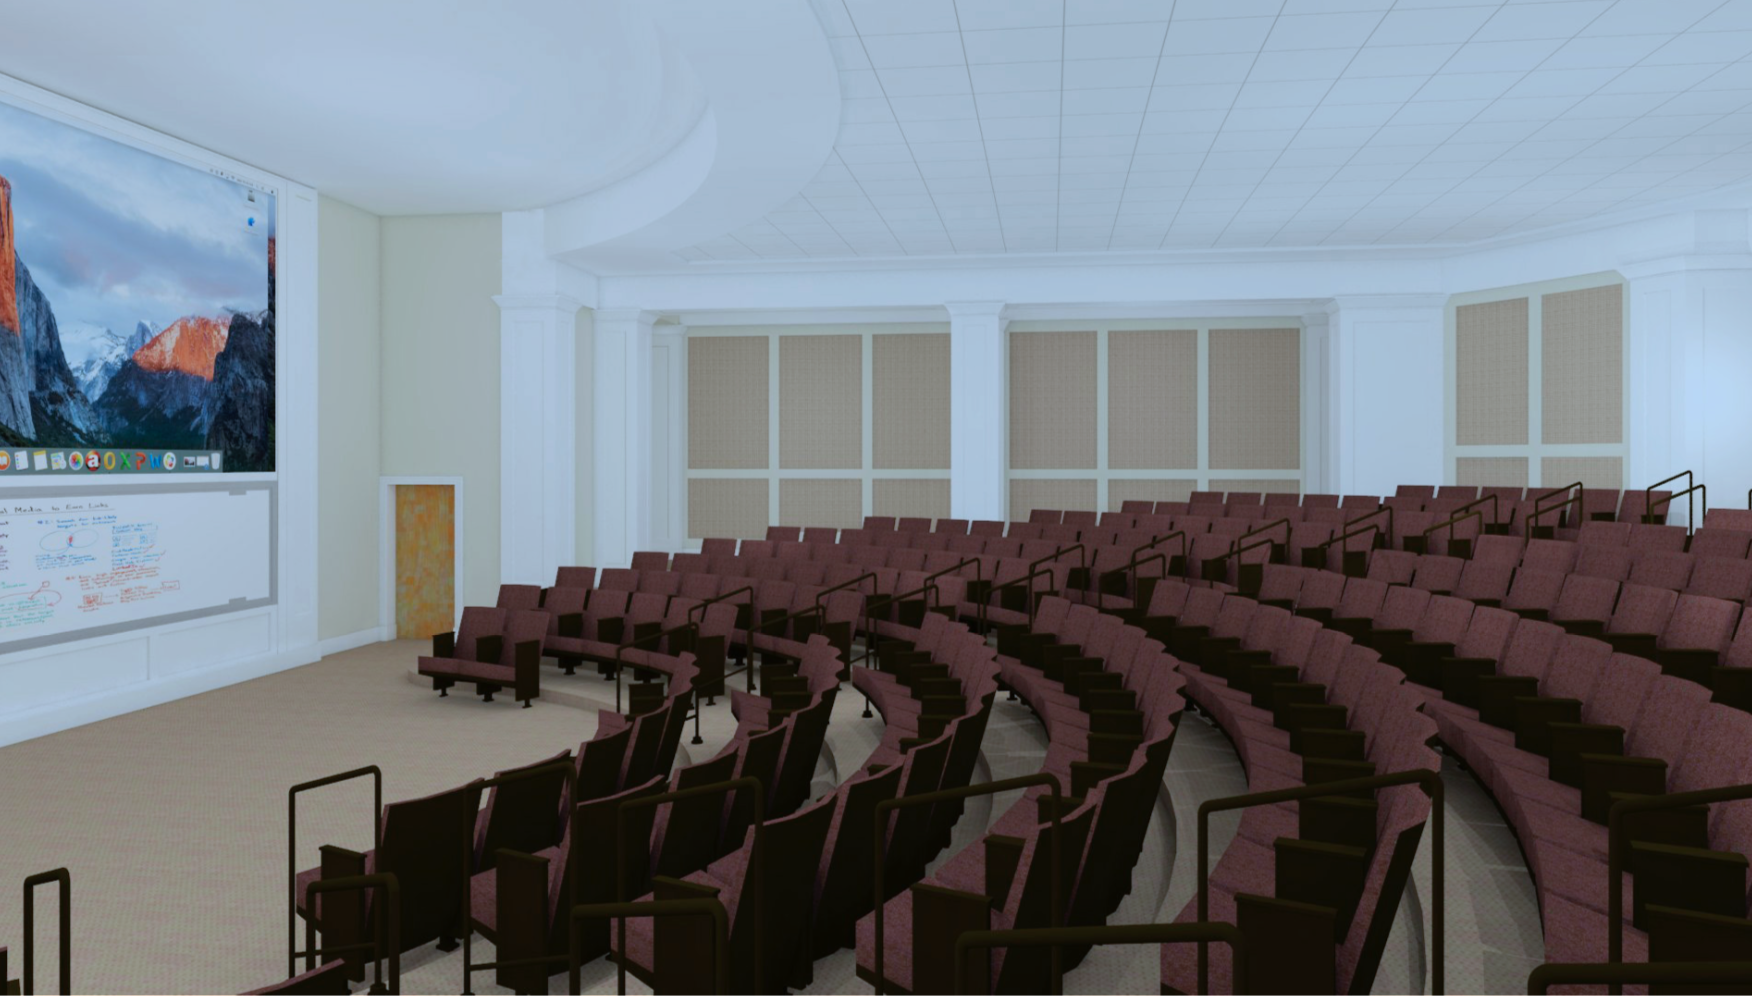 A rendering of a classroom in the BLC